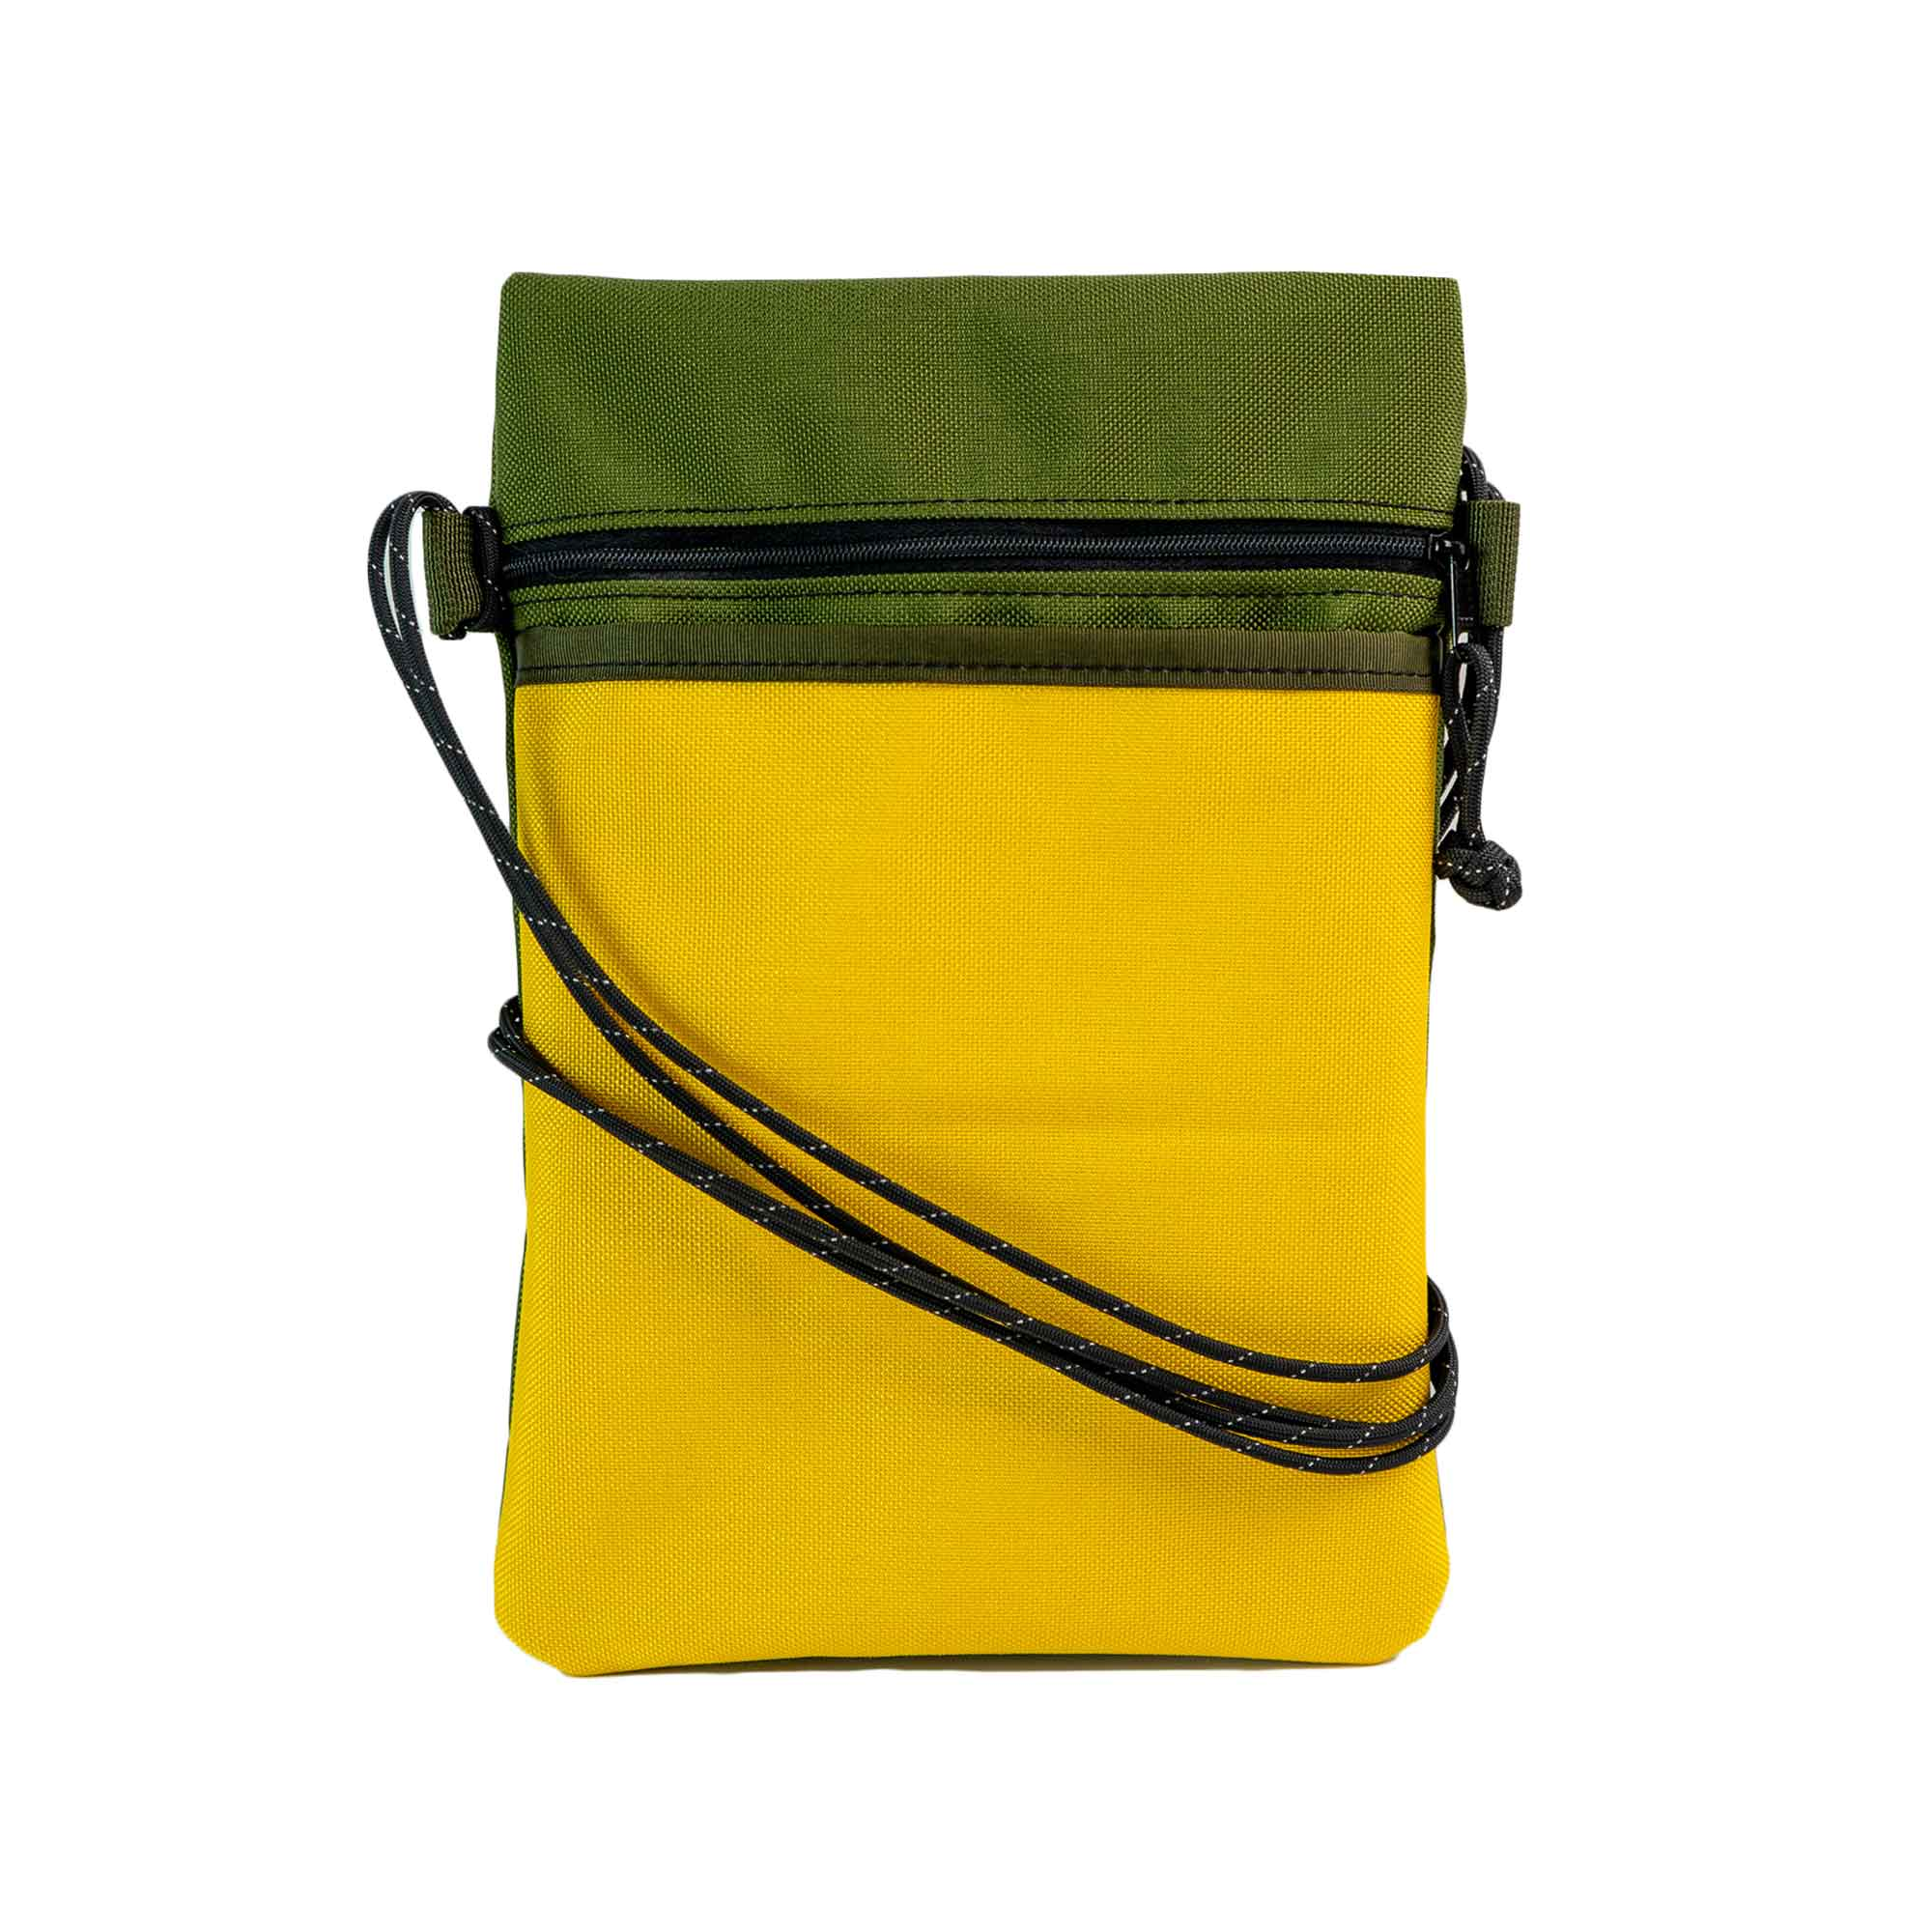 X-Over Shoulder Bag